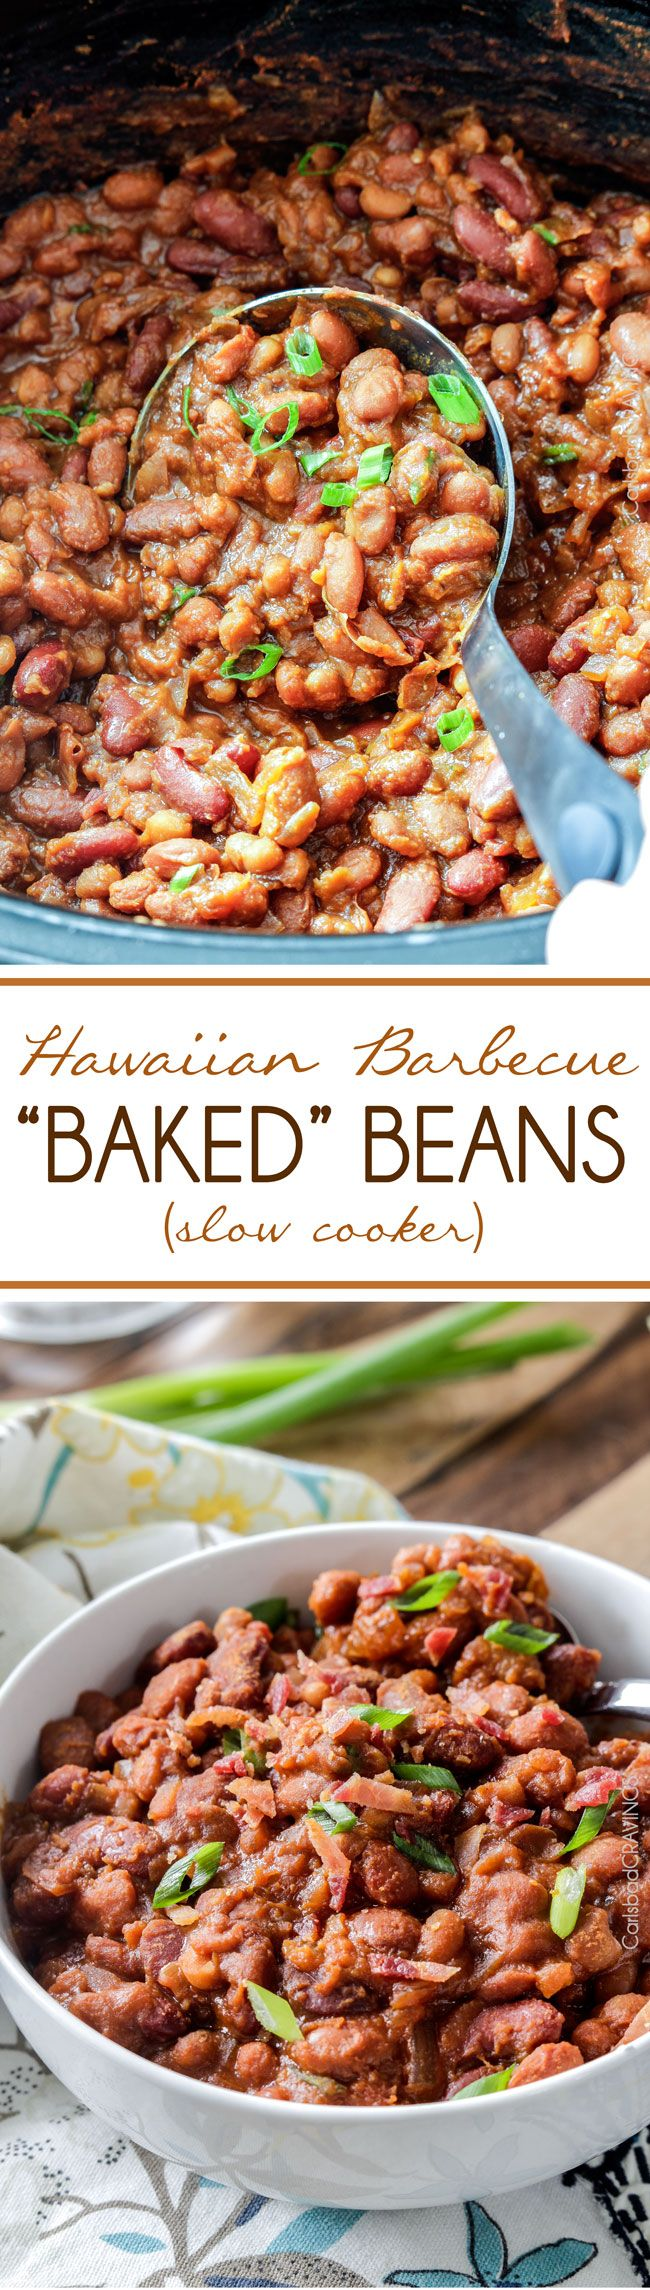 """Slow Cooker Hawaiian Barbecue """"Baked"""" Beans simmered in a pineapple infused barbecue bath enlivened with just the right kick of Cajun spices"""